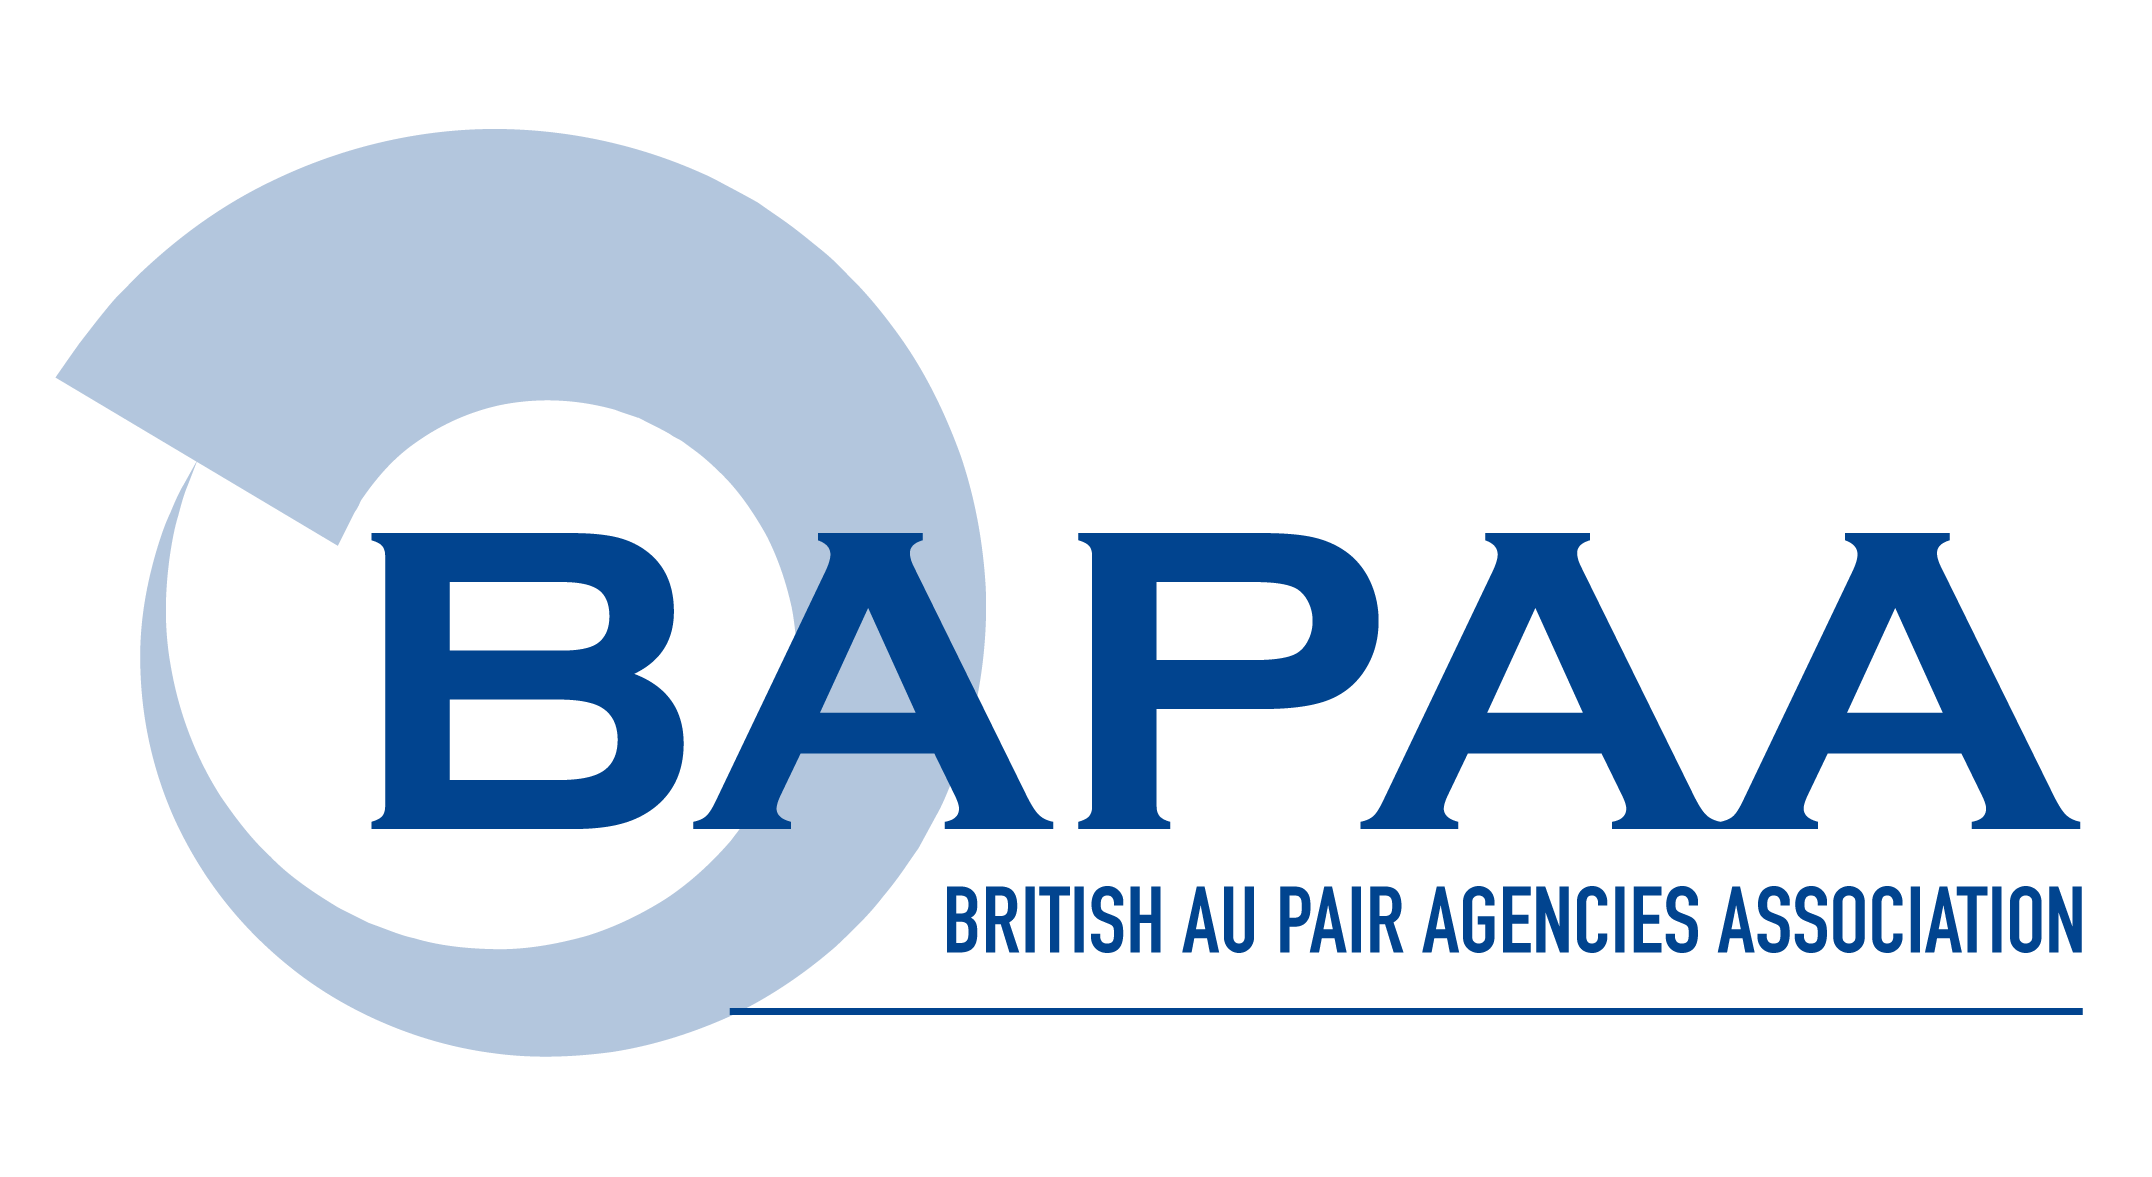 British Au Pair Agencies Assocation